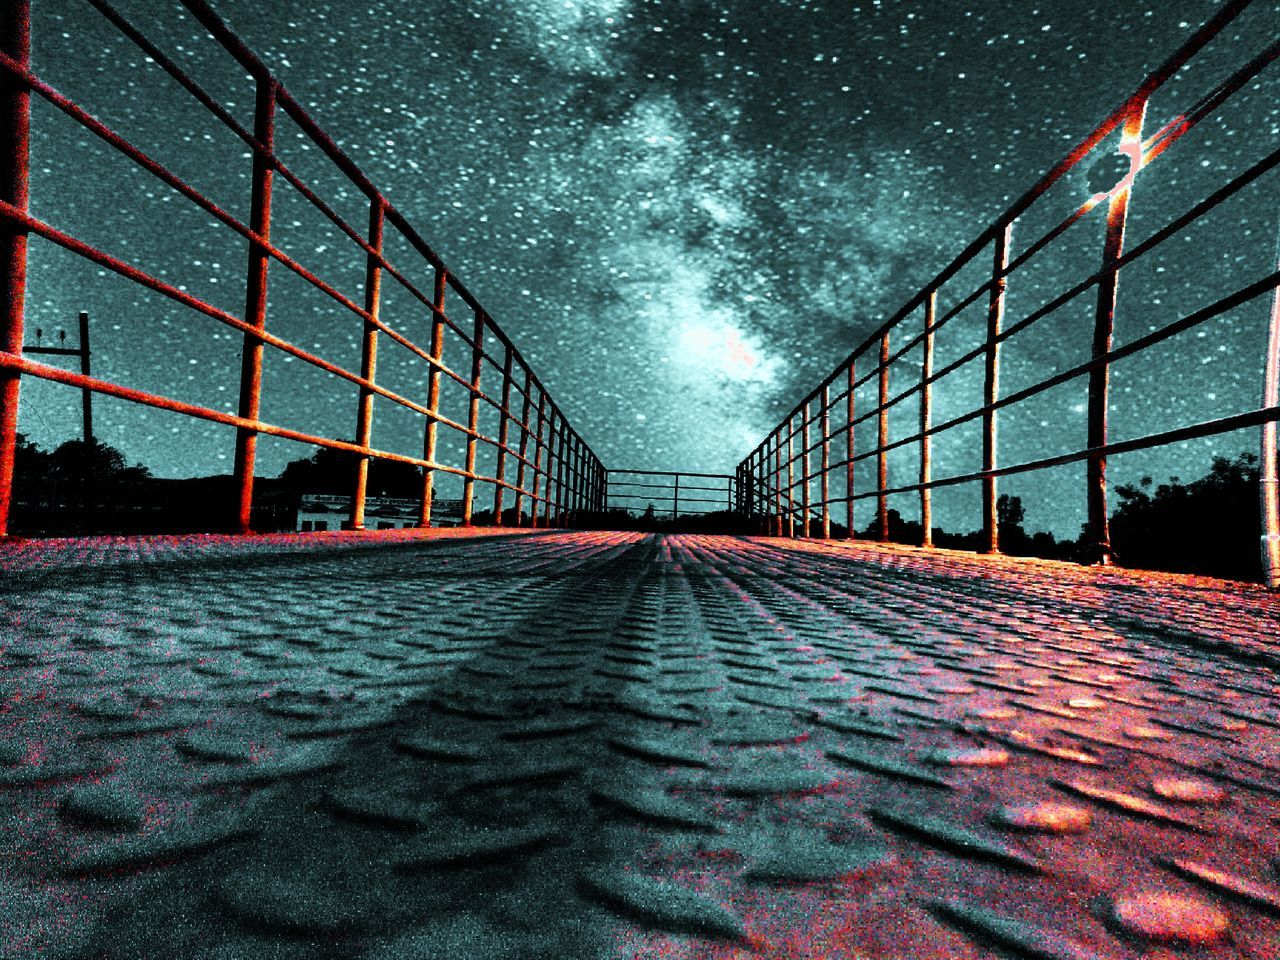 night, star - space, space, sky, the way forward, astronomy, bridge - man made structure, galaxy, illuminated, architecture, no people, built structure, outdoors, clear sky, water, snow, nature